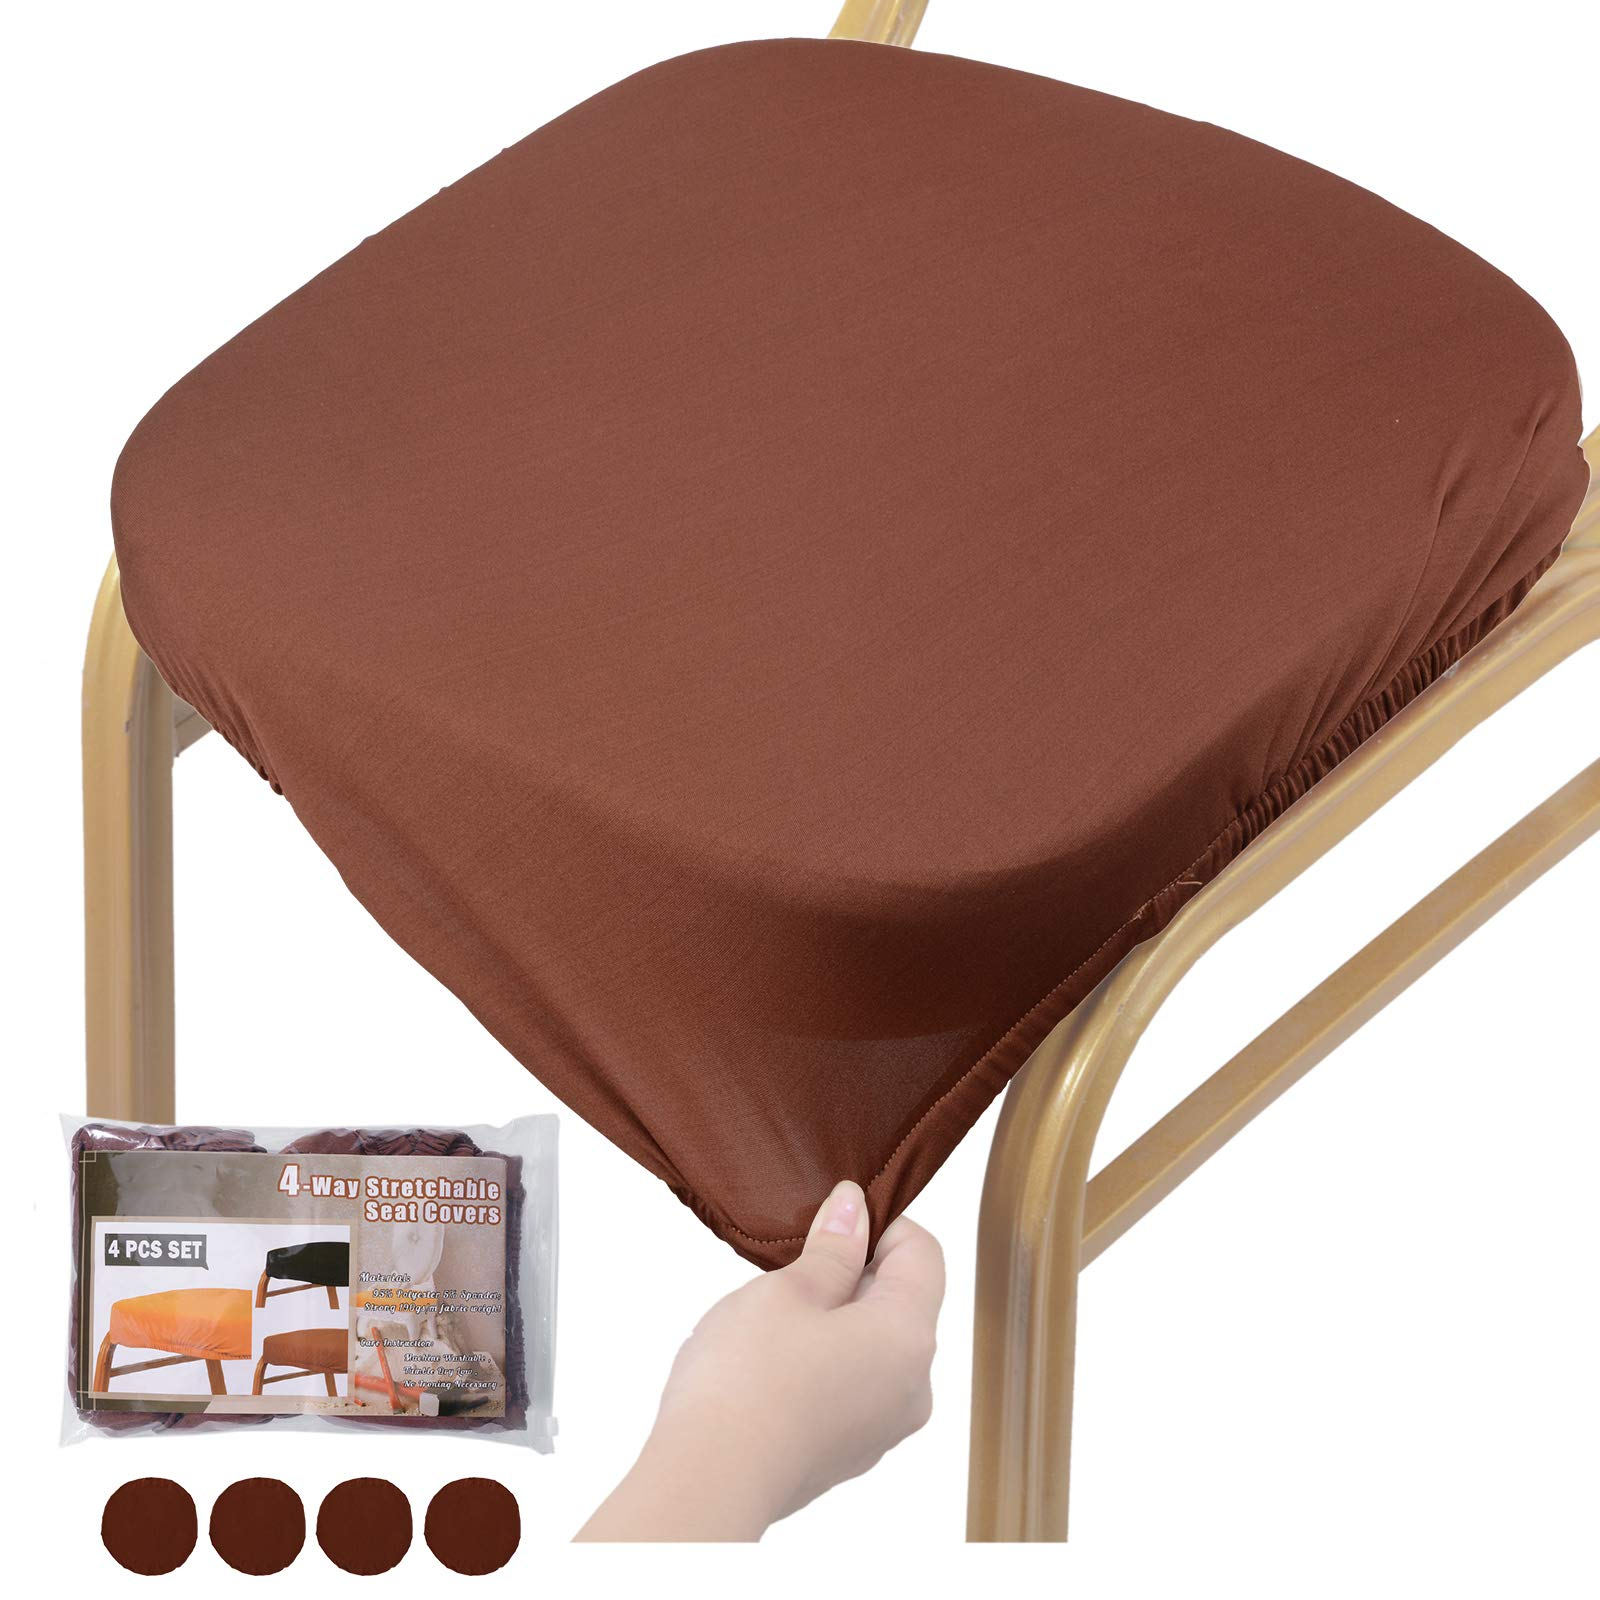 Voilamart Chair Seat Covers, Stretchable Dining Chair Cover Slipcovers, Soft Chair Protectors for Dining Room Patio Office Chair - Pack of 4, Coffee